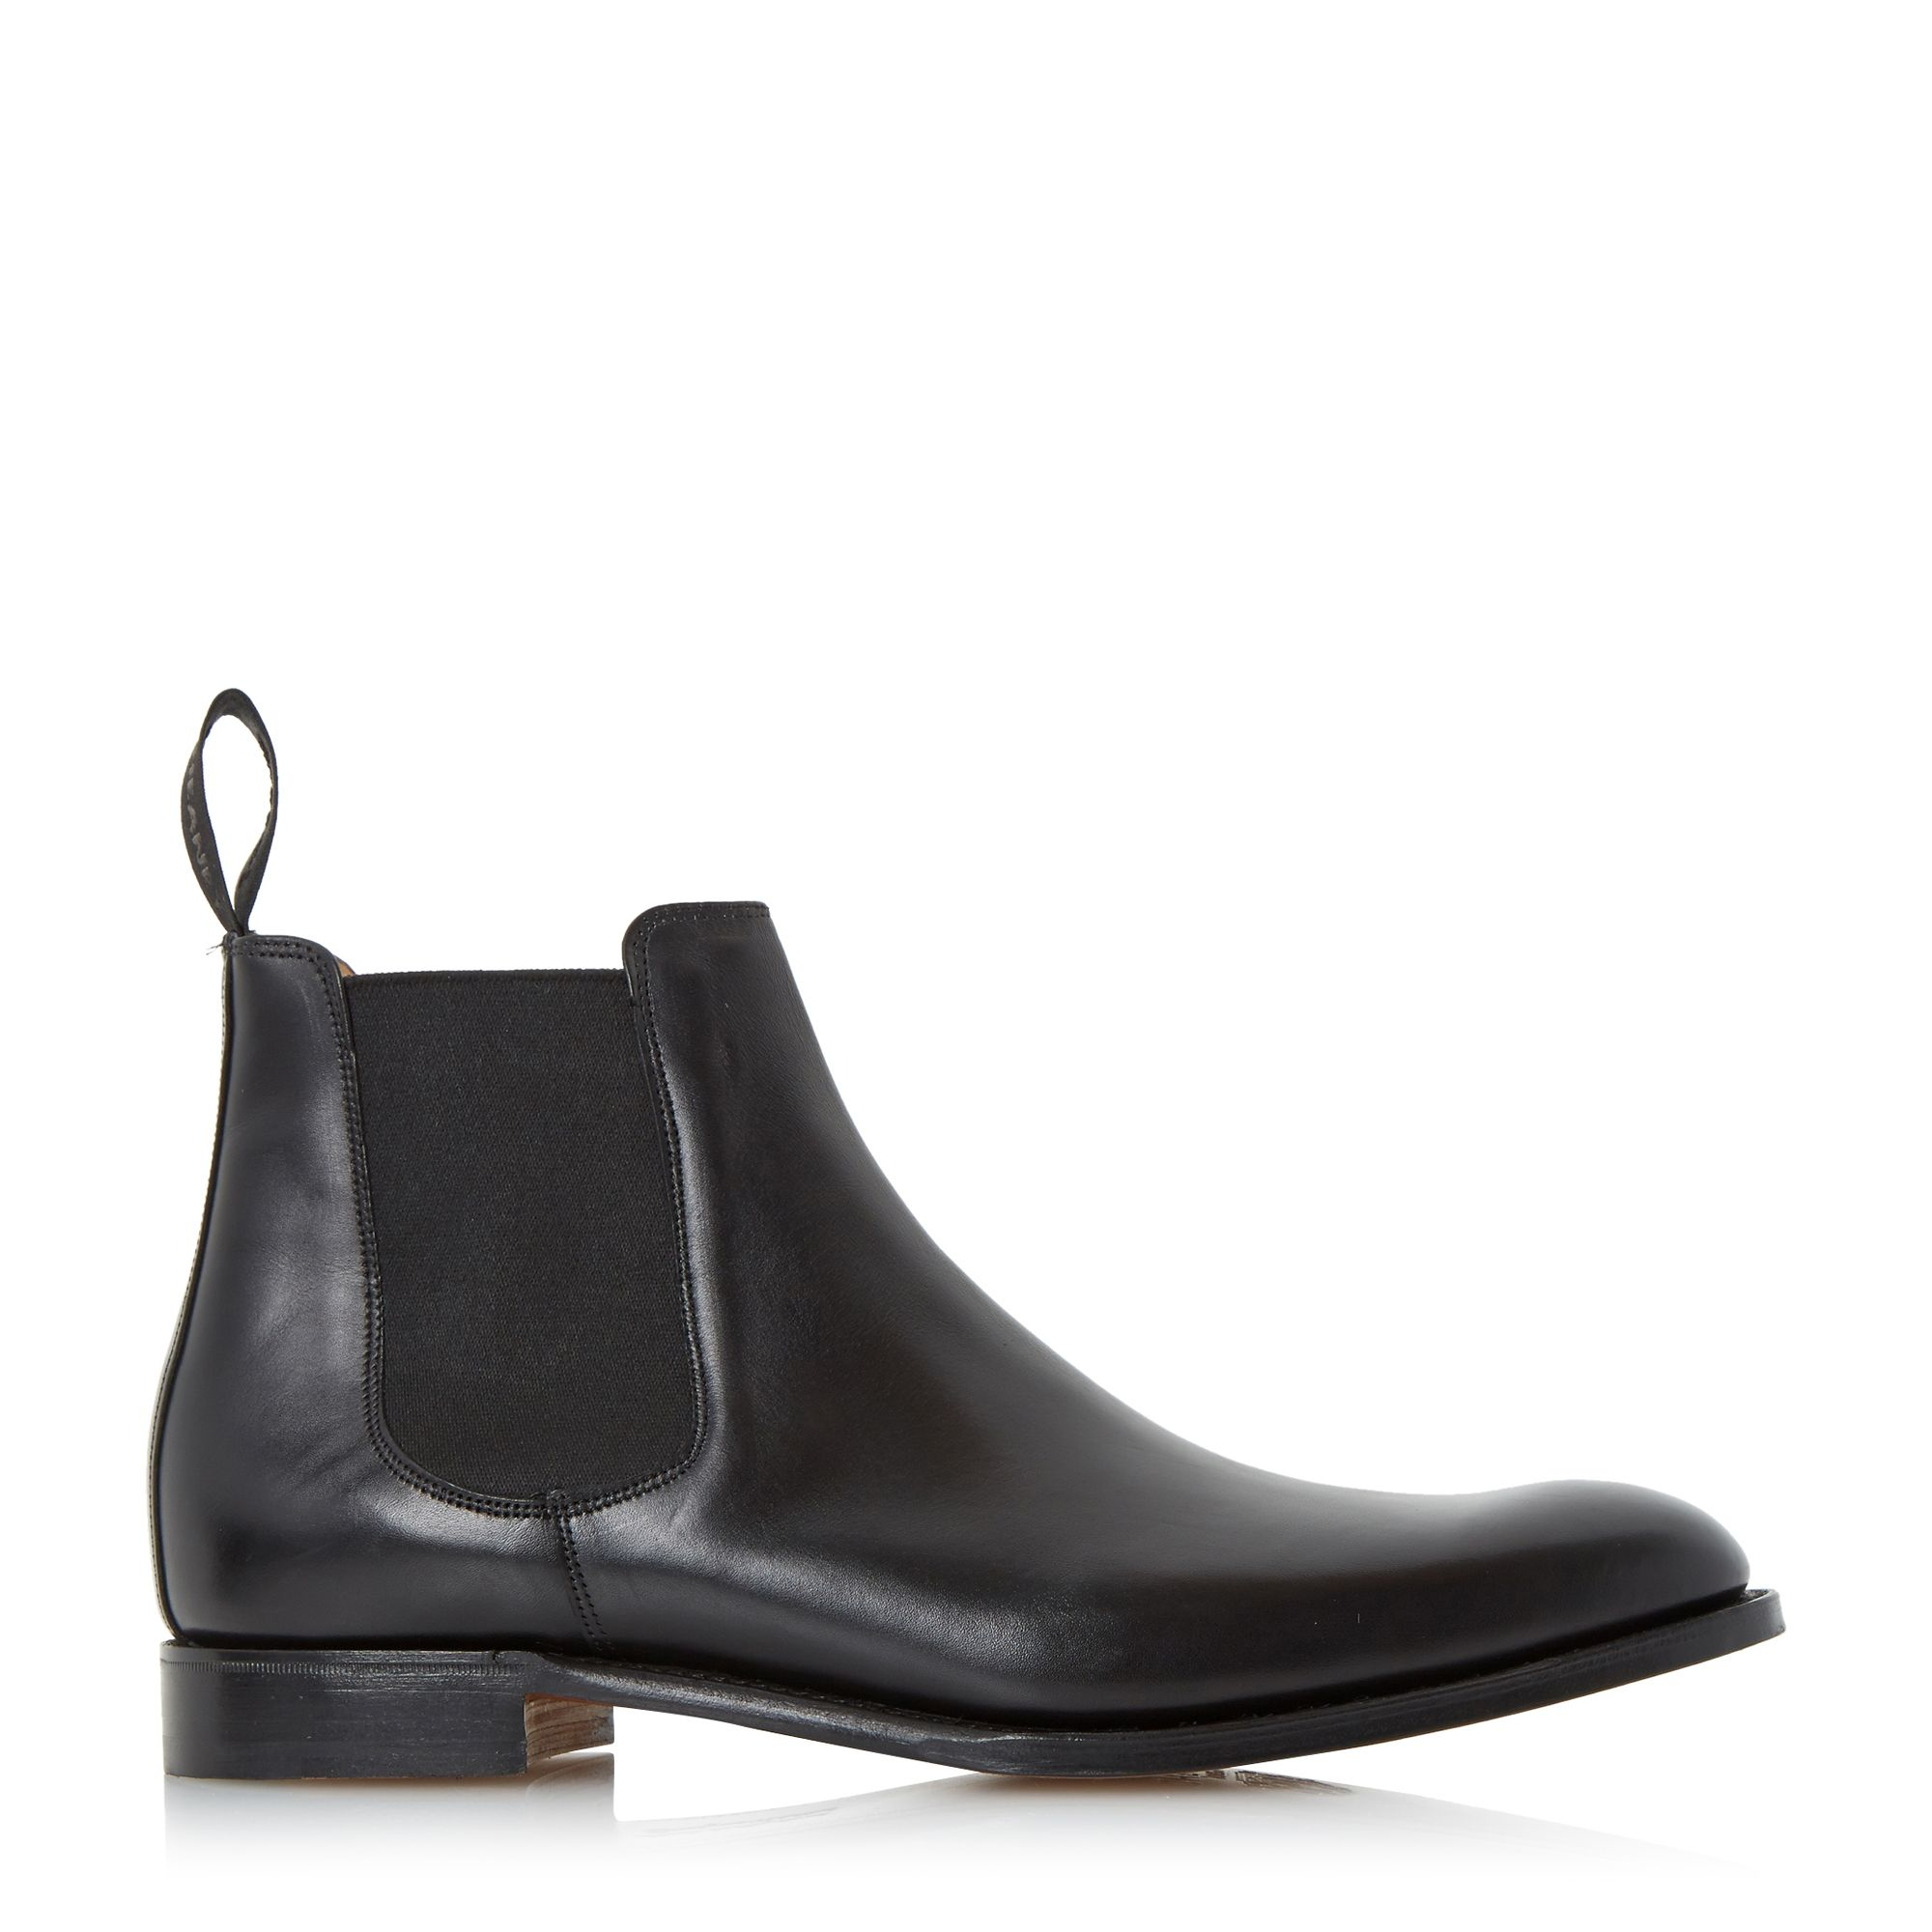 cheaney threadneedle chelsea boots in black for men lyst. Black Bedroom Furniture Sets. Home Design Ideas